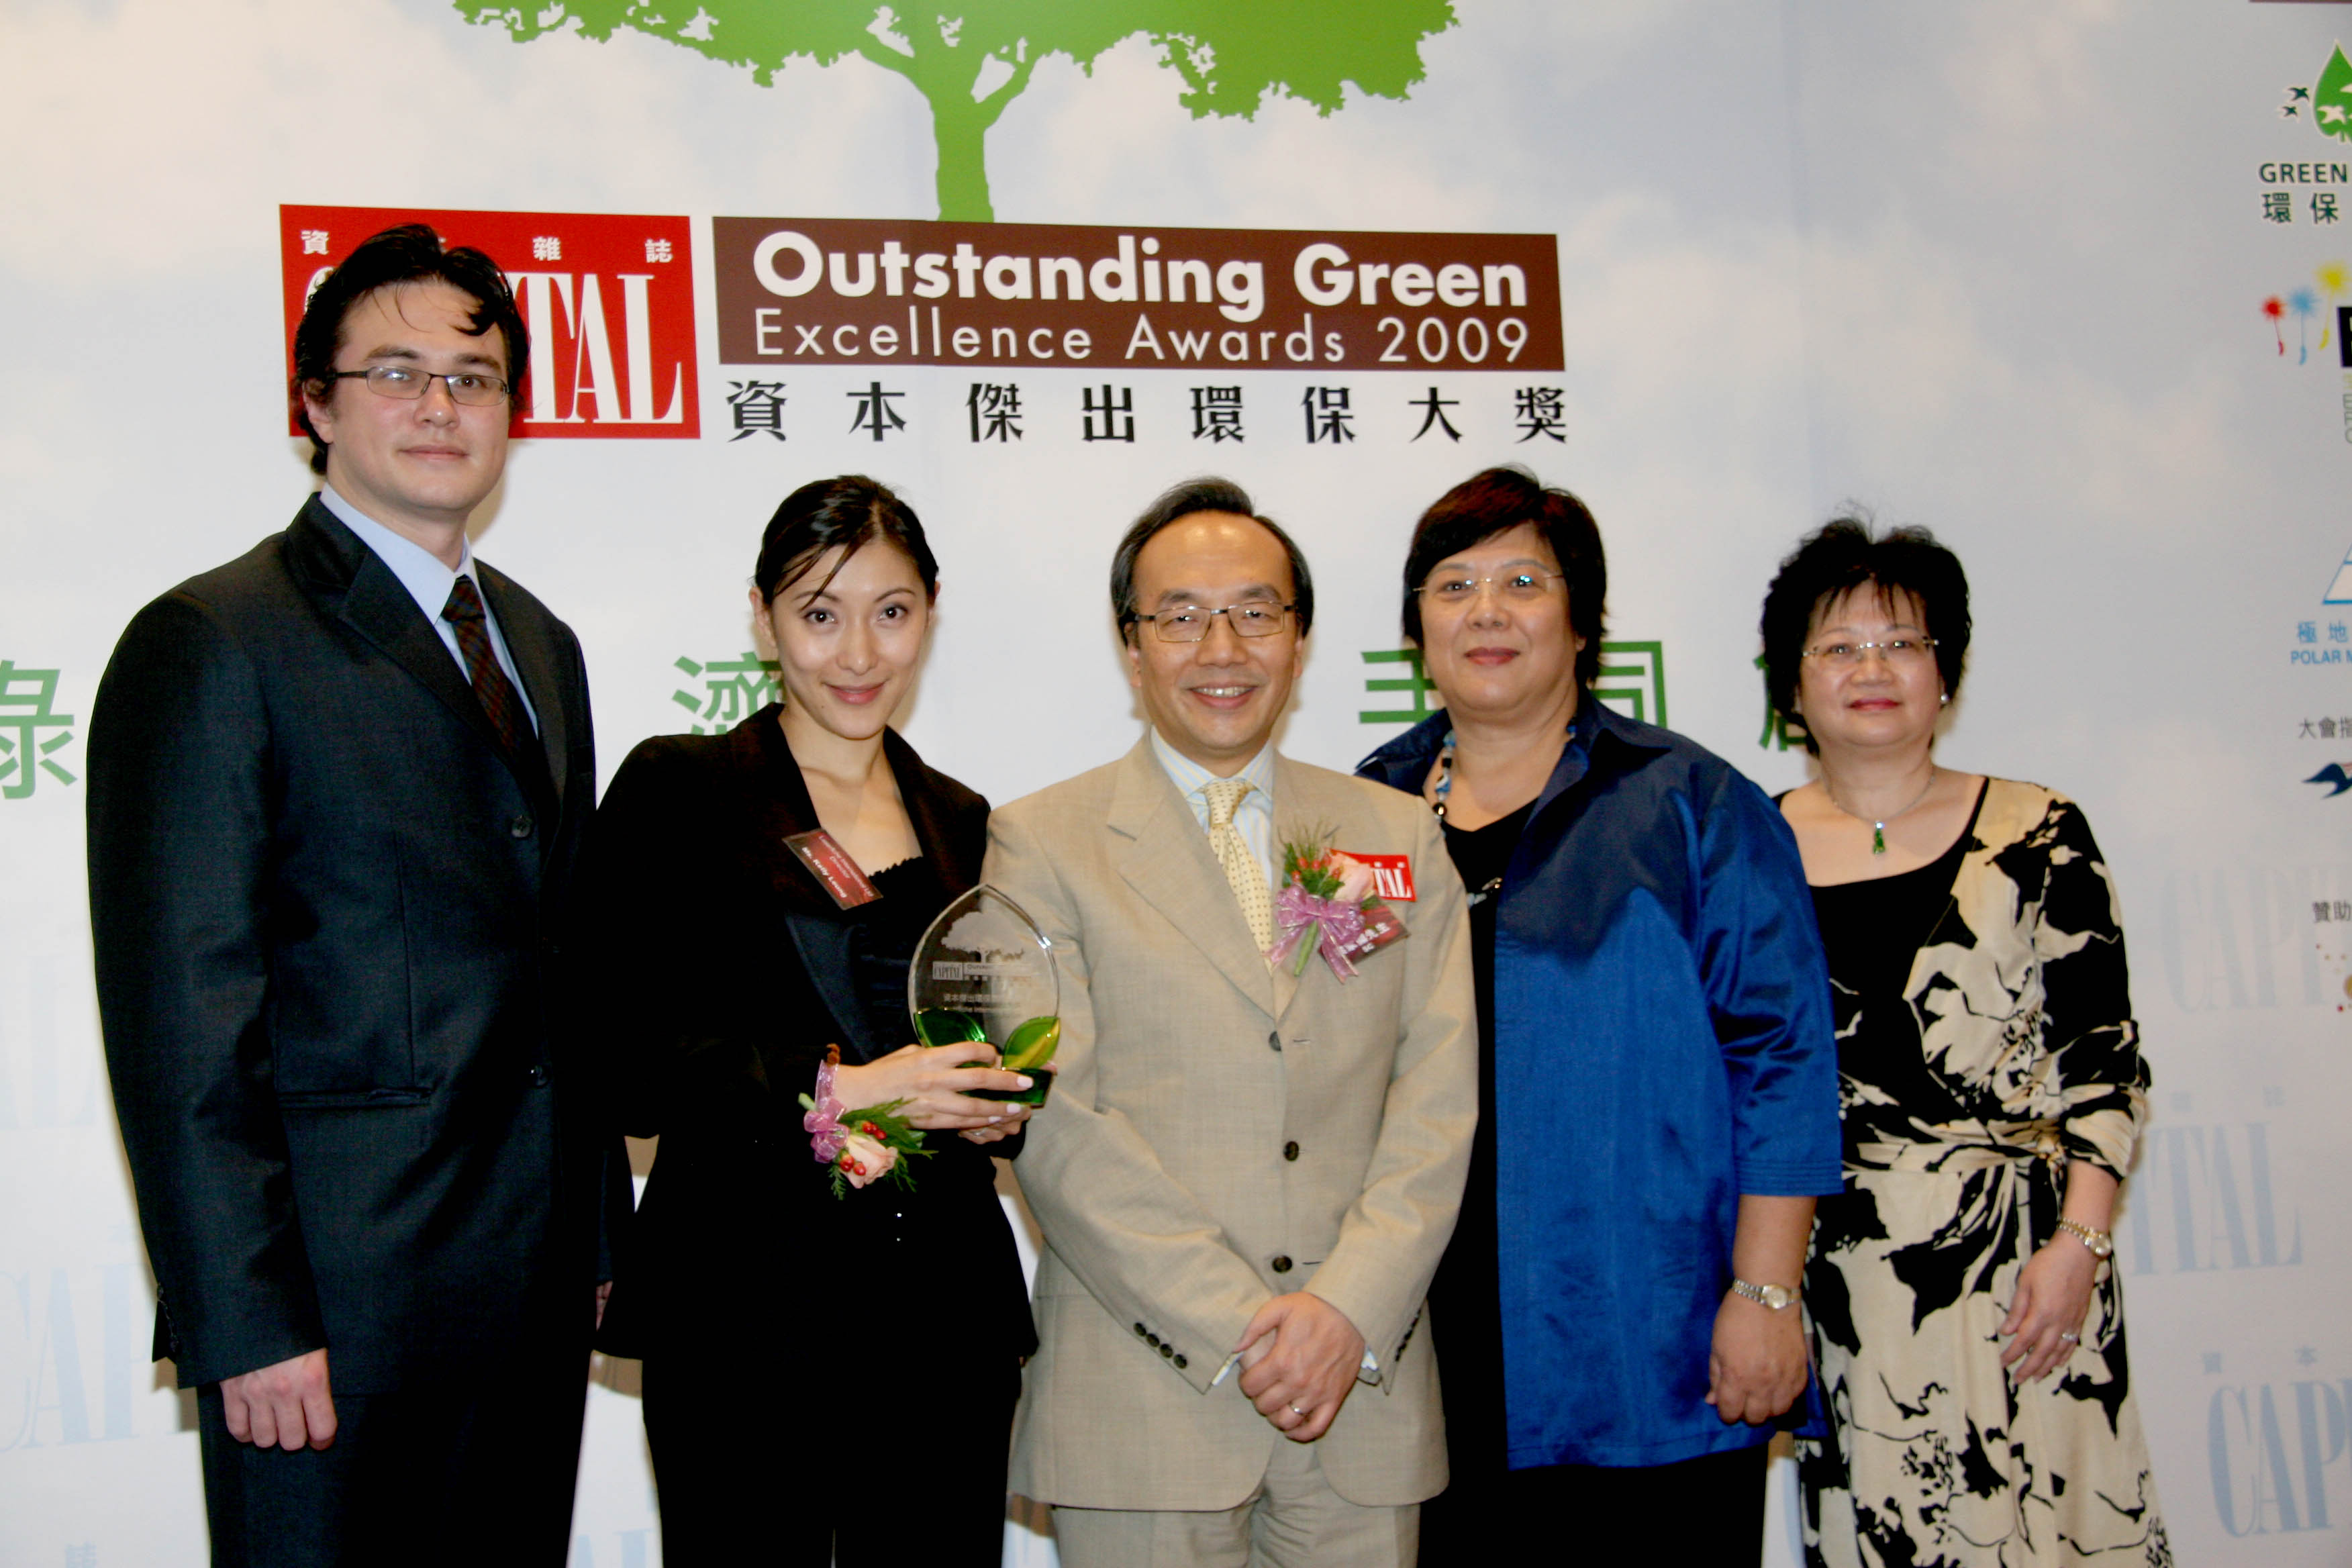 Peter Wayman, Laserfiche Hong Kong; Kelly Leung, Laserfiche Hong Kong; The Honorable Alan Leong Kah-kit, SC; Phyllis Chen, Laserfiche Hong Kong; and Joanna Tse, Laserfiche Hong Kong at the Capital Outstanding Green Excellence Awards 2009 event